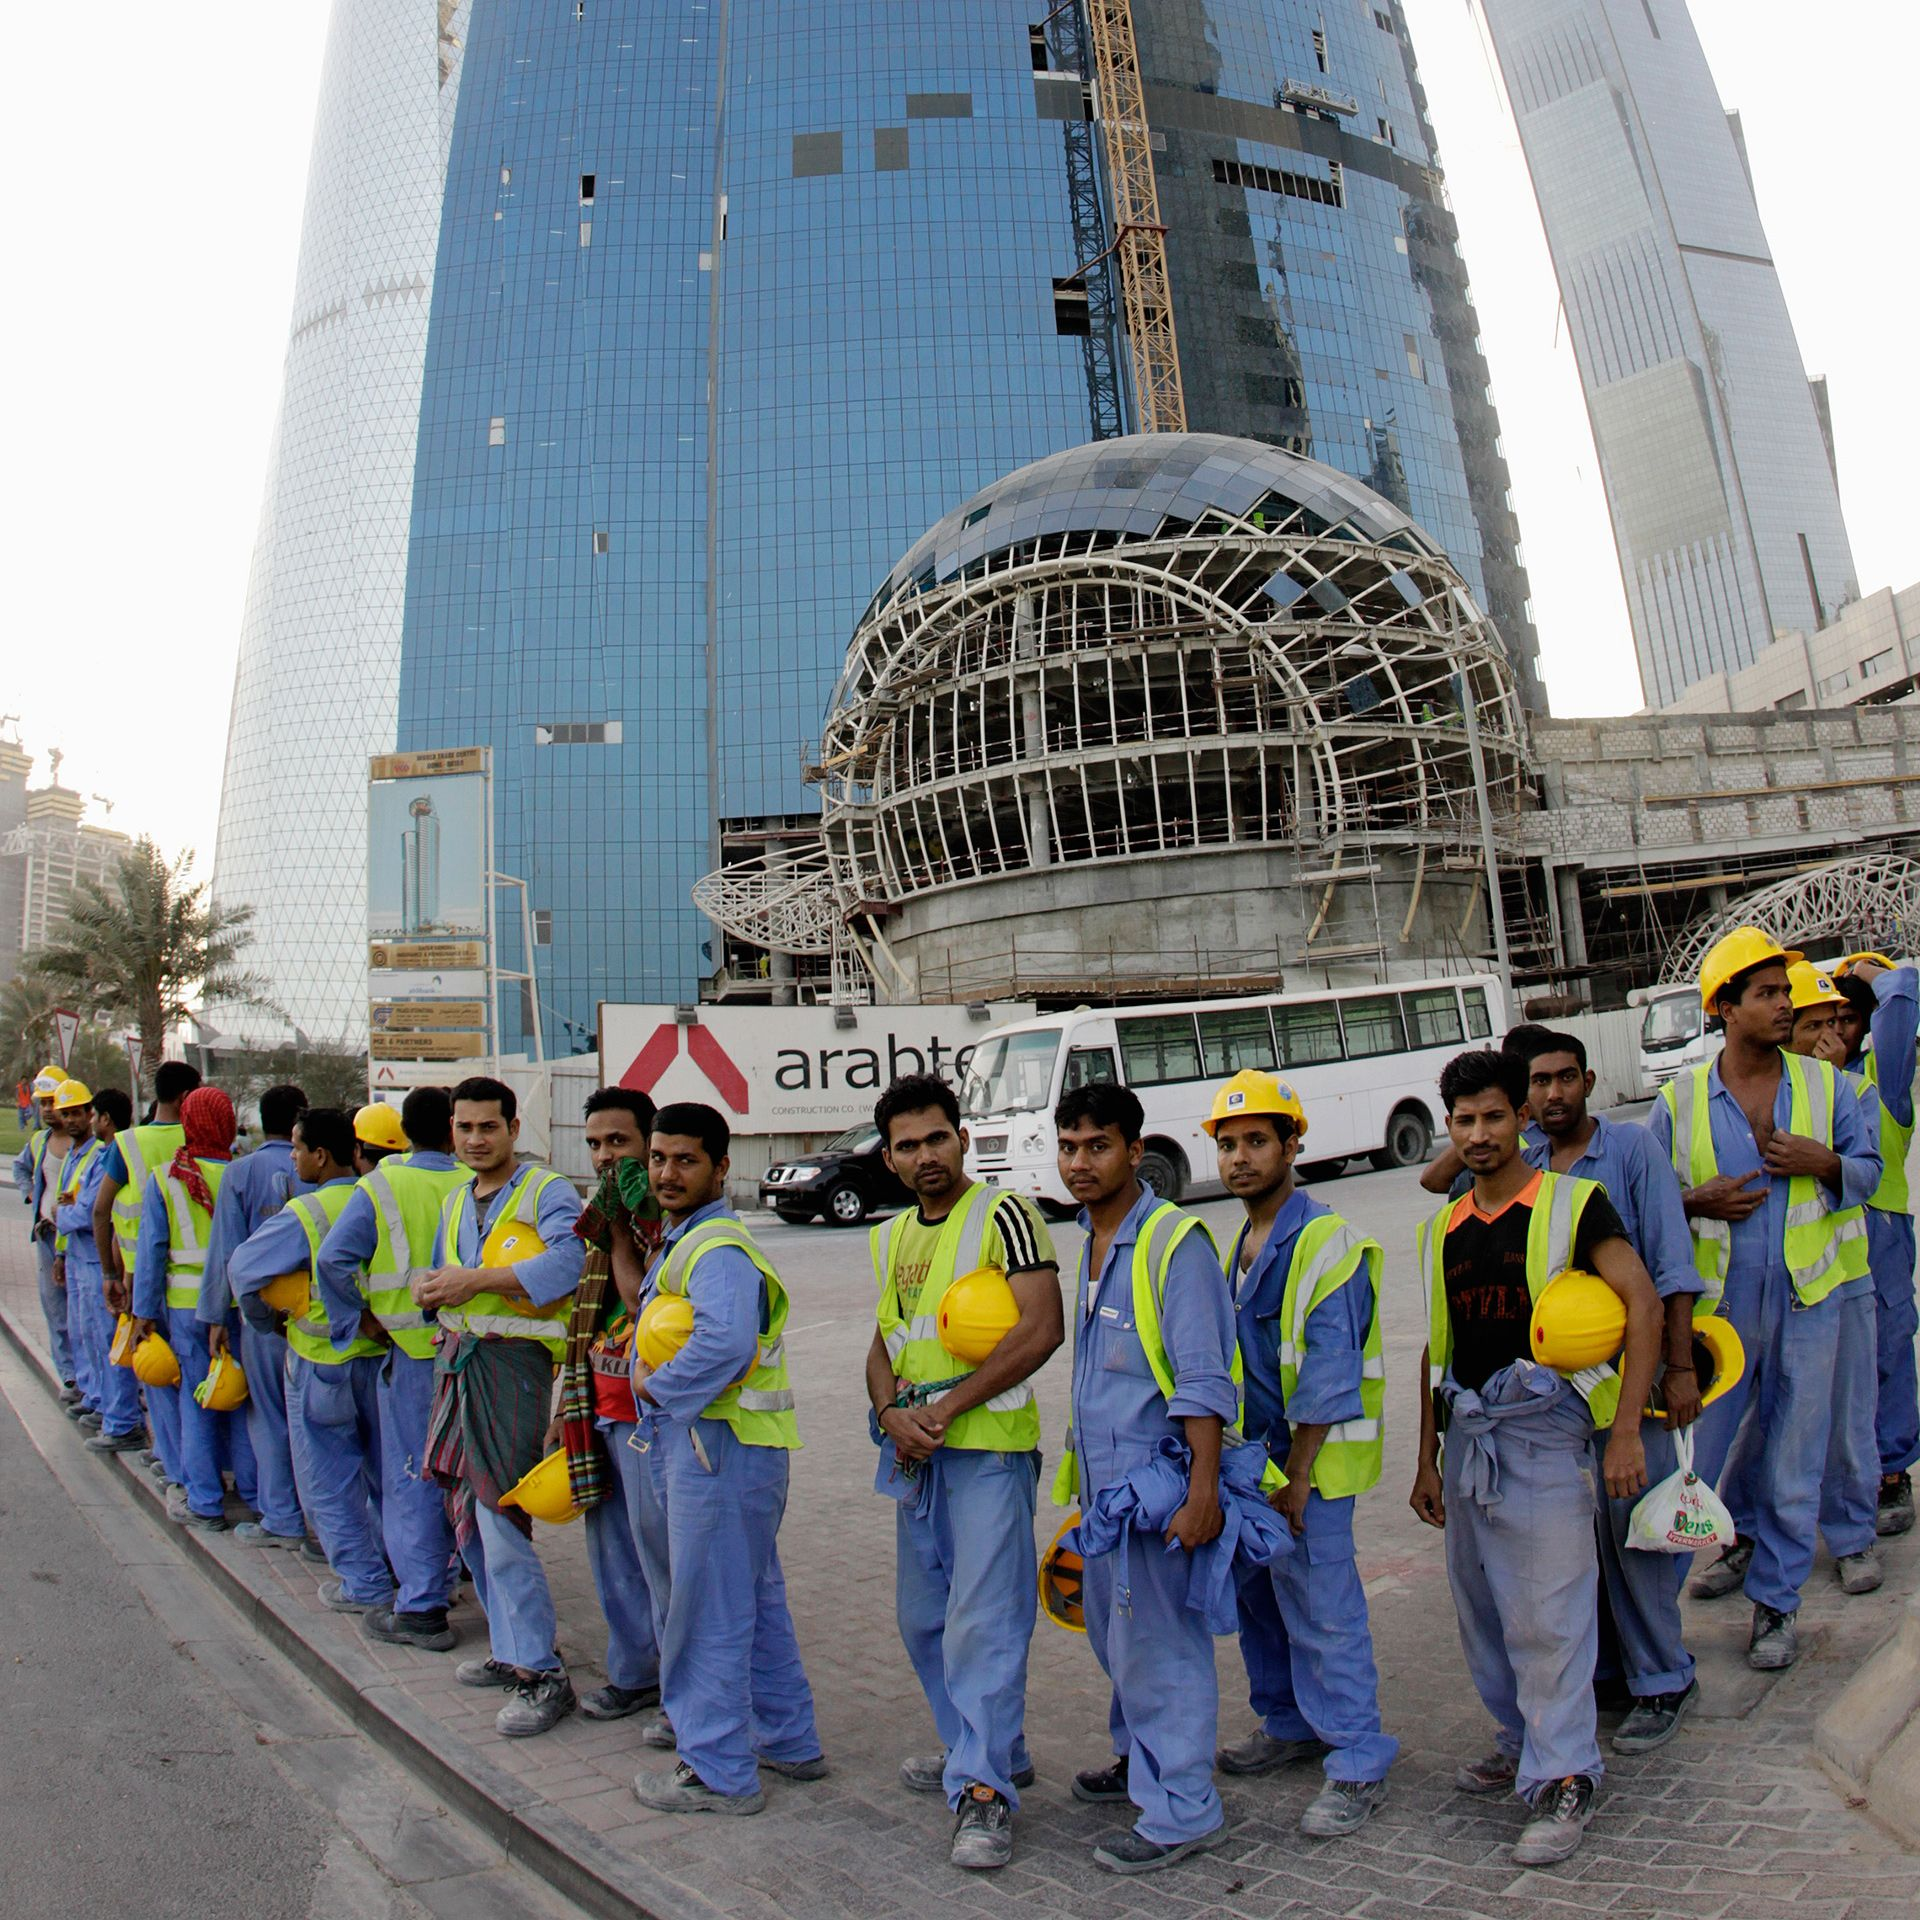 Qatar Rugby: Human Rights Concerns Raised In Qatar Before World Cup